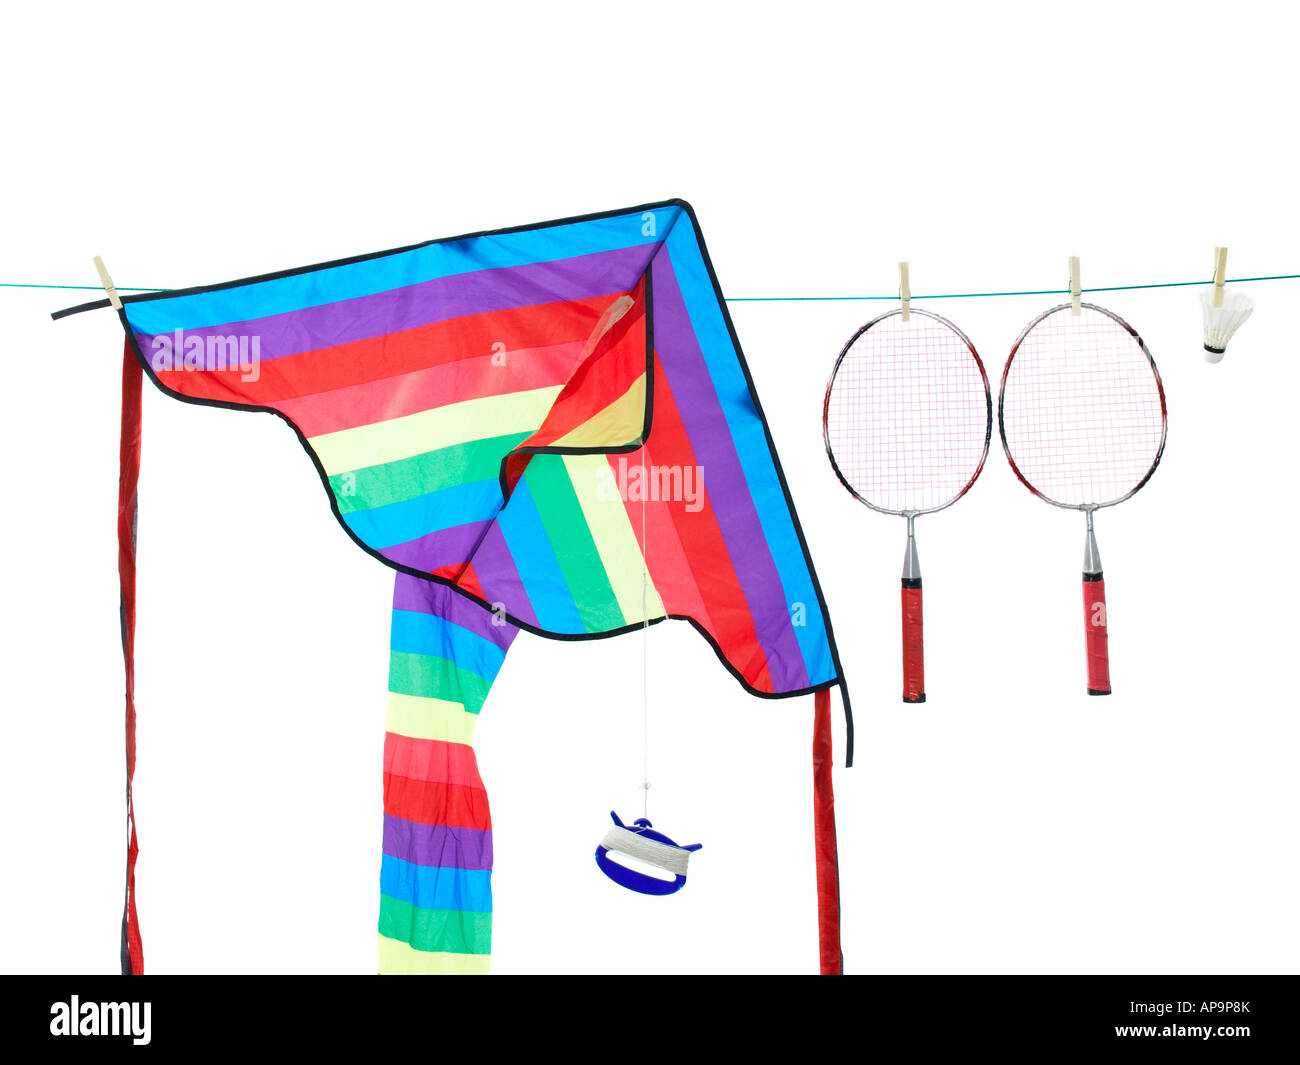 hight resolution of a kite and badminton rackets on a washing line stock image